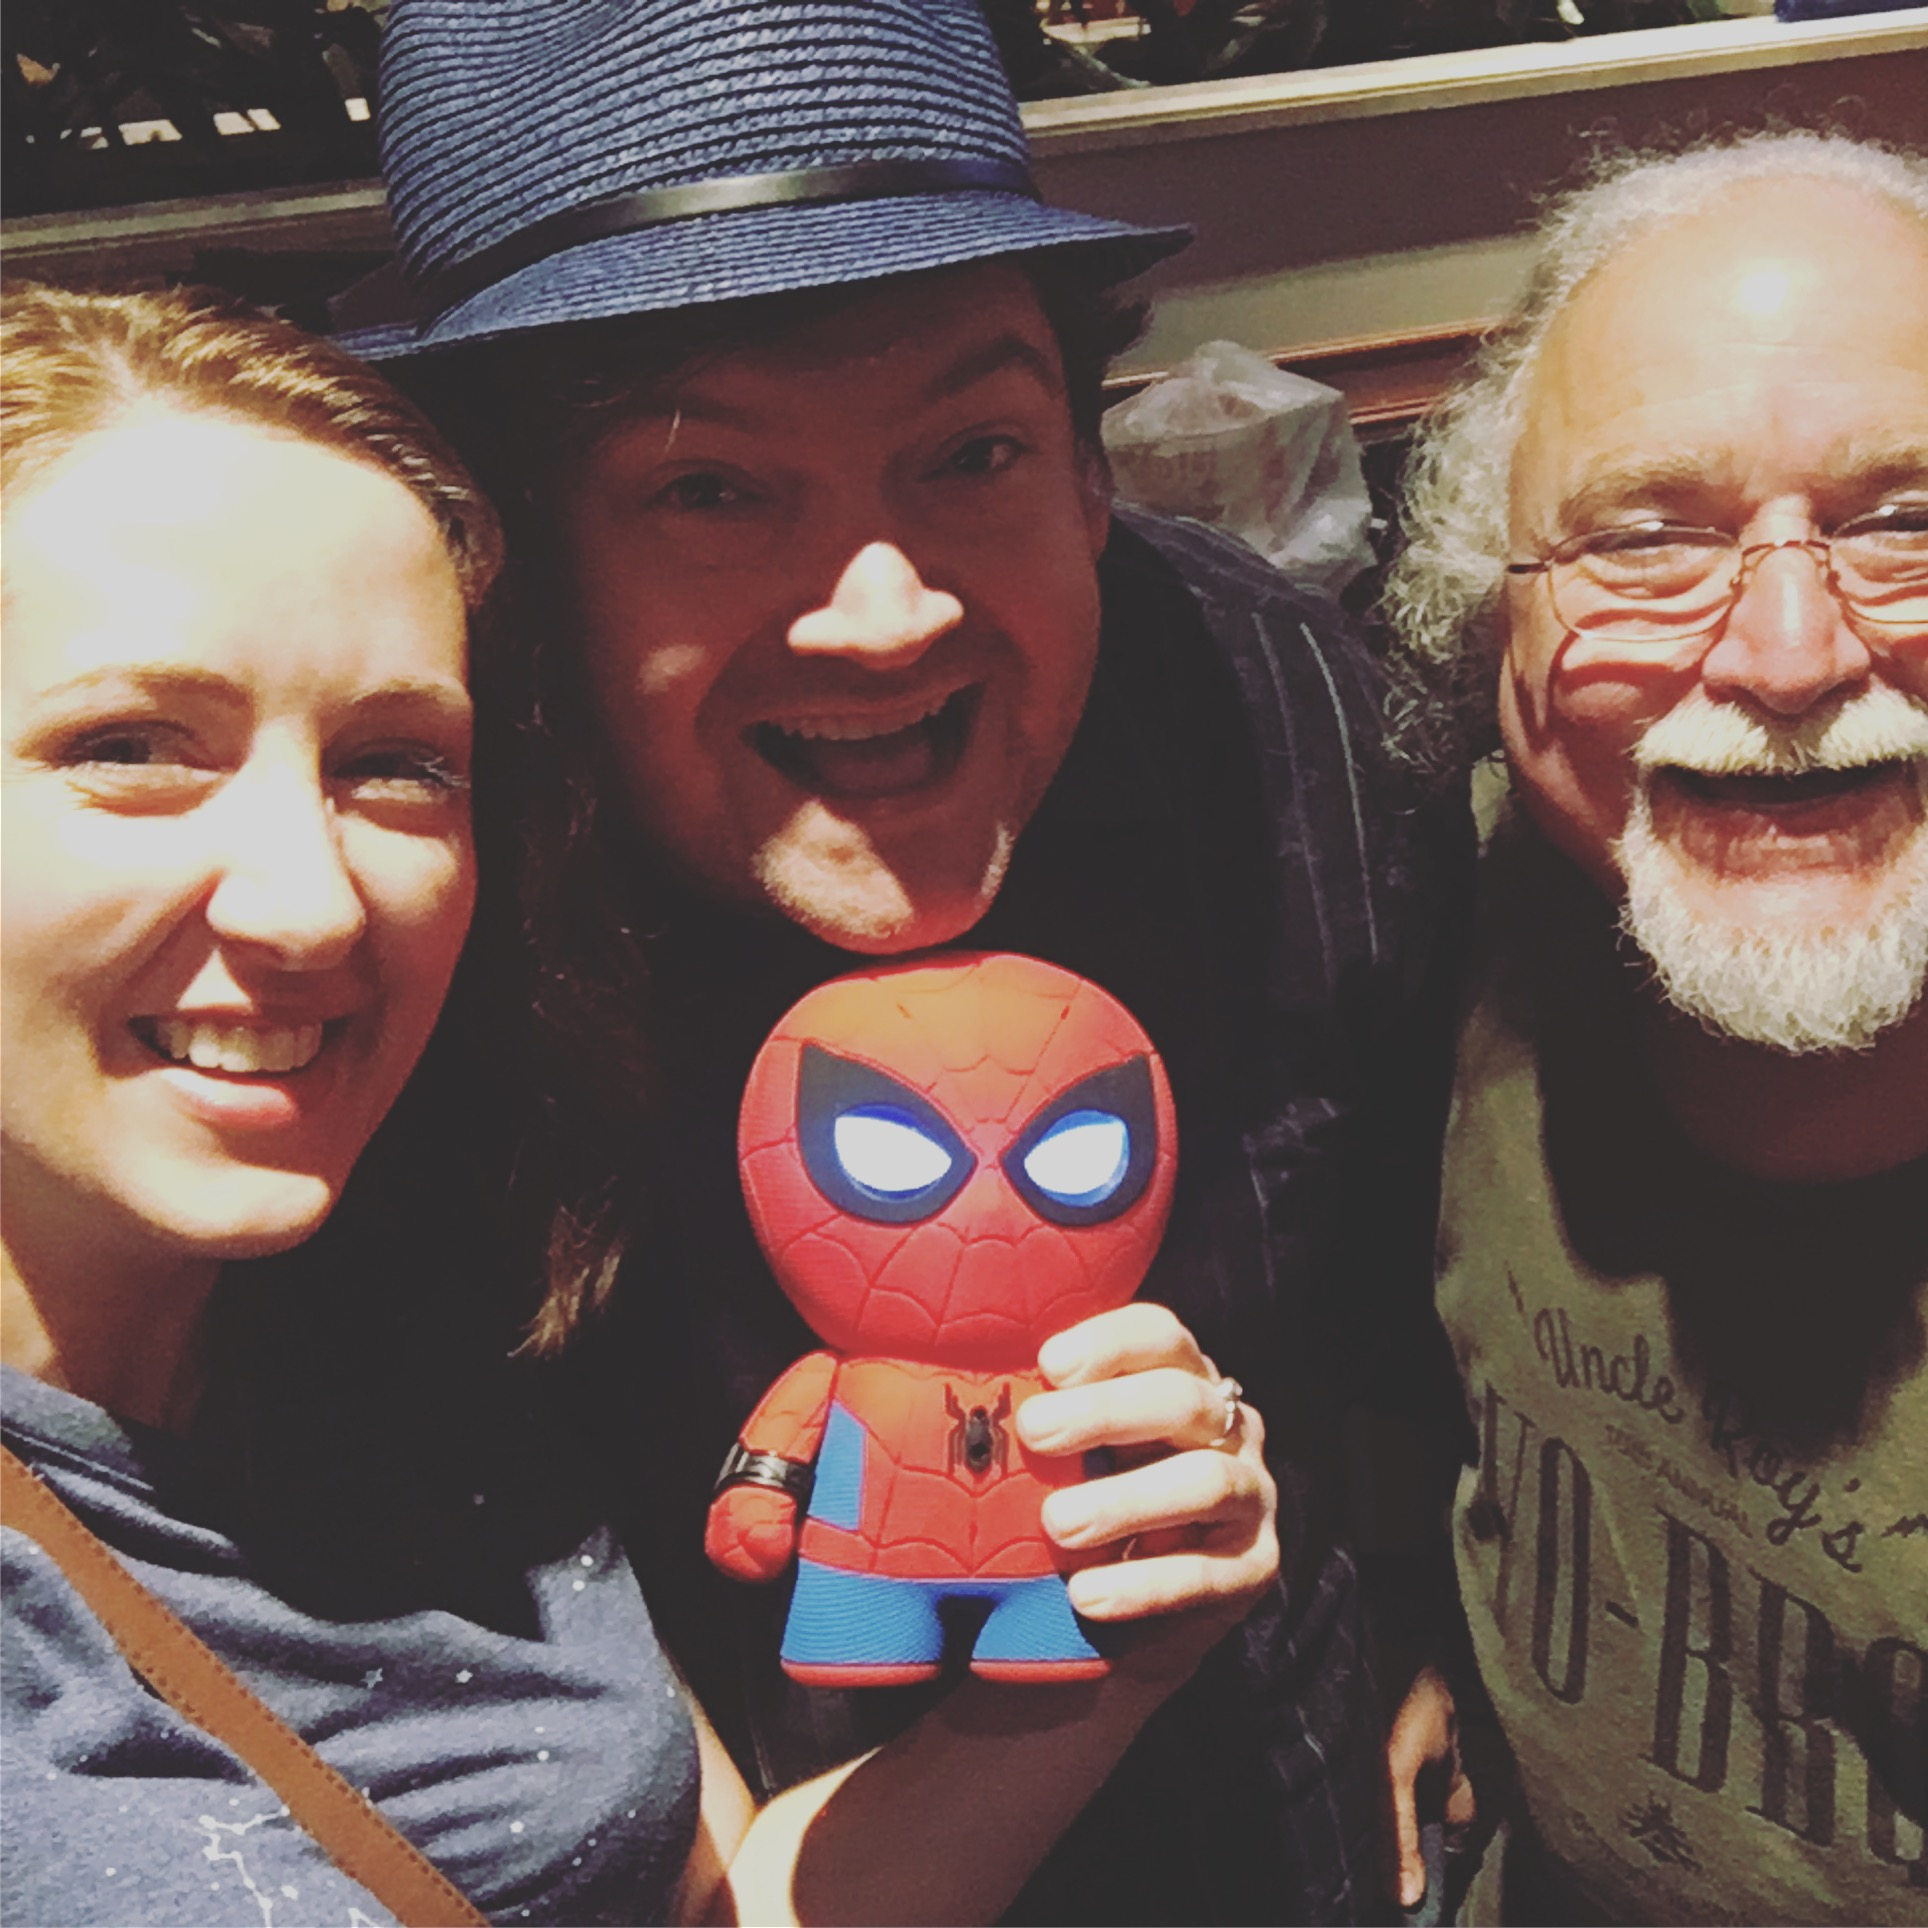 Me, Andrew Bates, Spidey, and Uncle Roy...conference stragglers, enjoying one last hurrah at the hotel bar...